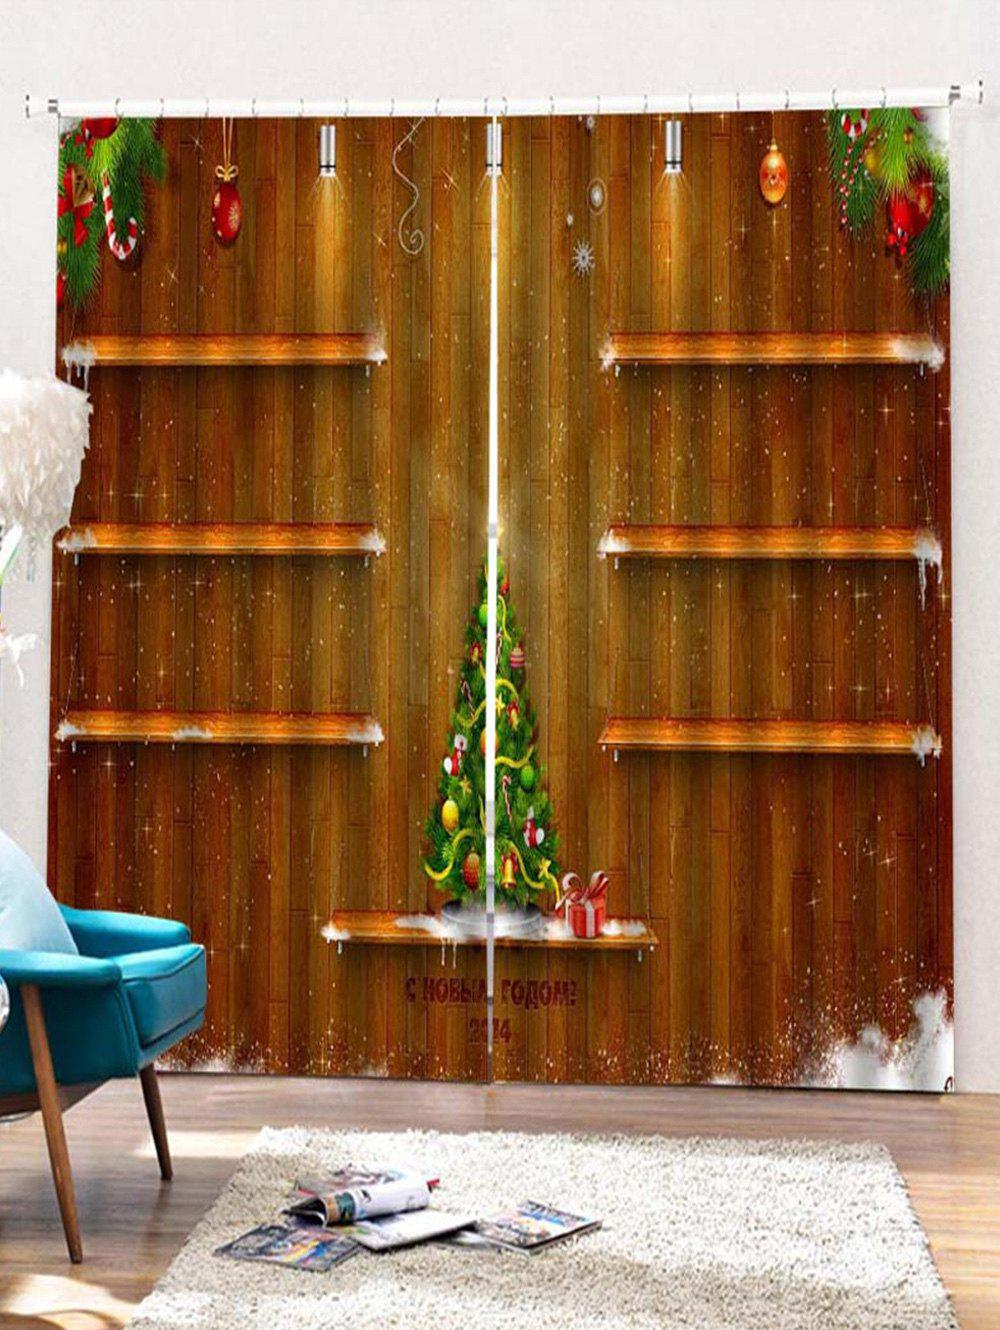 2PCS Christmas Tree Wooden Printed Window Curtains - WOOD W28 X L39 INCH X 2PCS